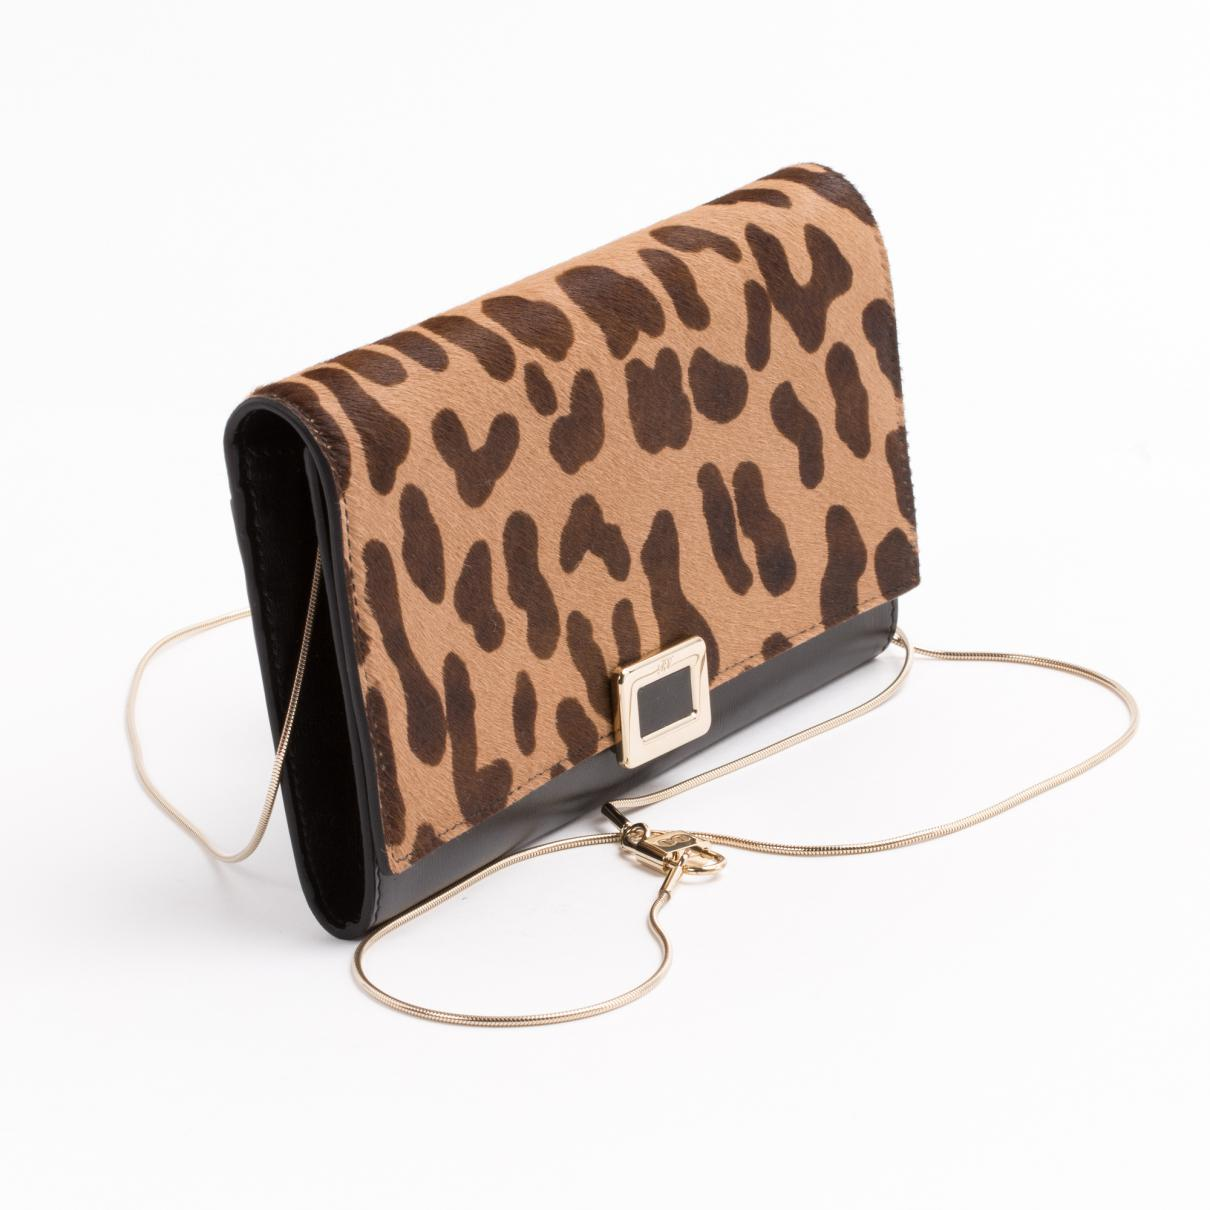 205b1f756856 Roger Vivier - Pre-owned Brown Pony-style Calfskin Clutch Bag - Lyst. View  fullscreen